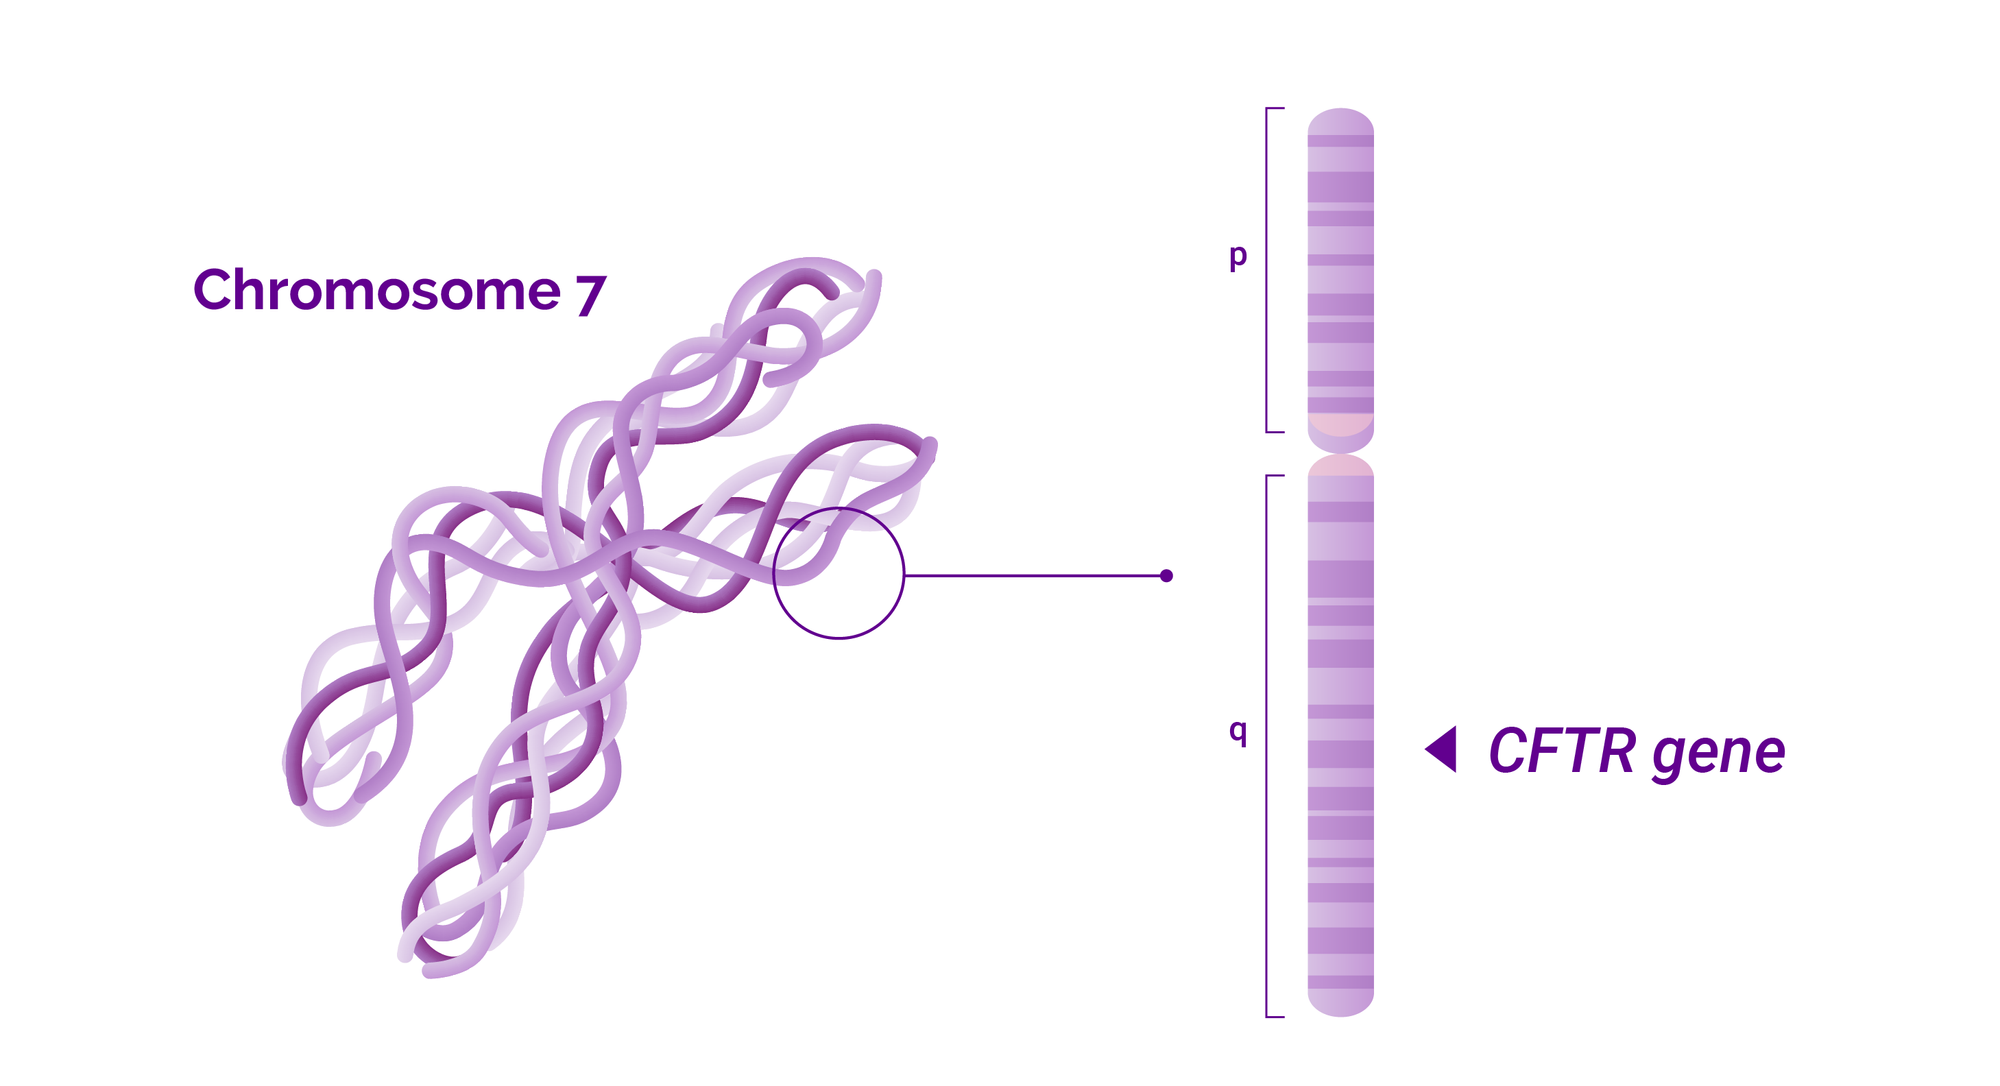 Chromosome 7 and the location of Cystic fibrosis related CFTR gene in q arm